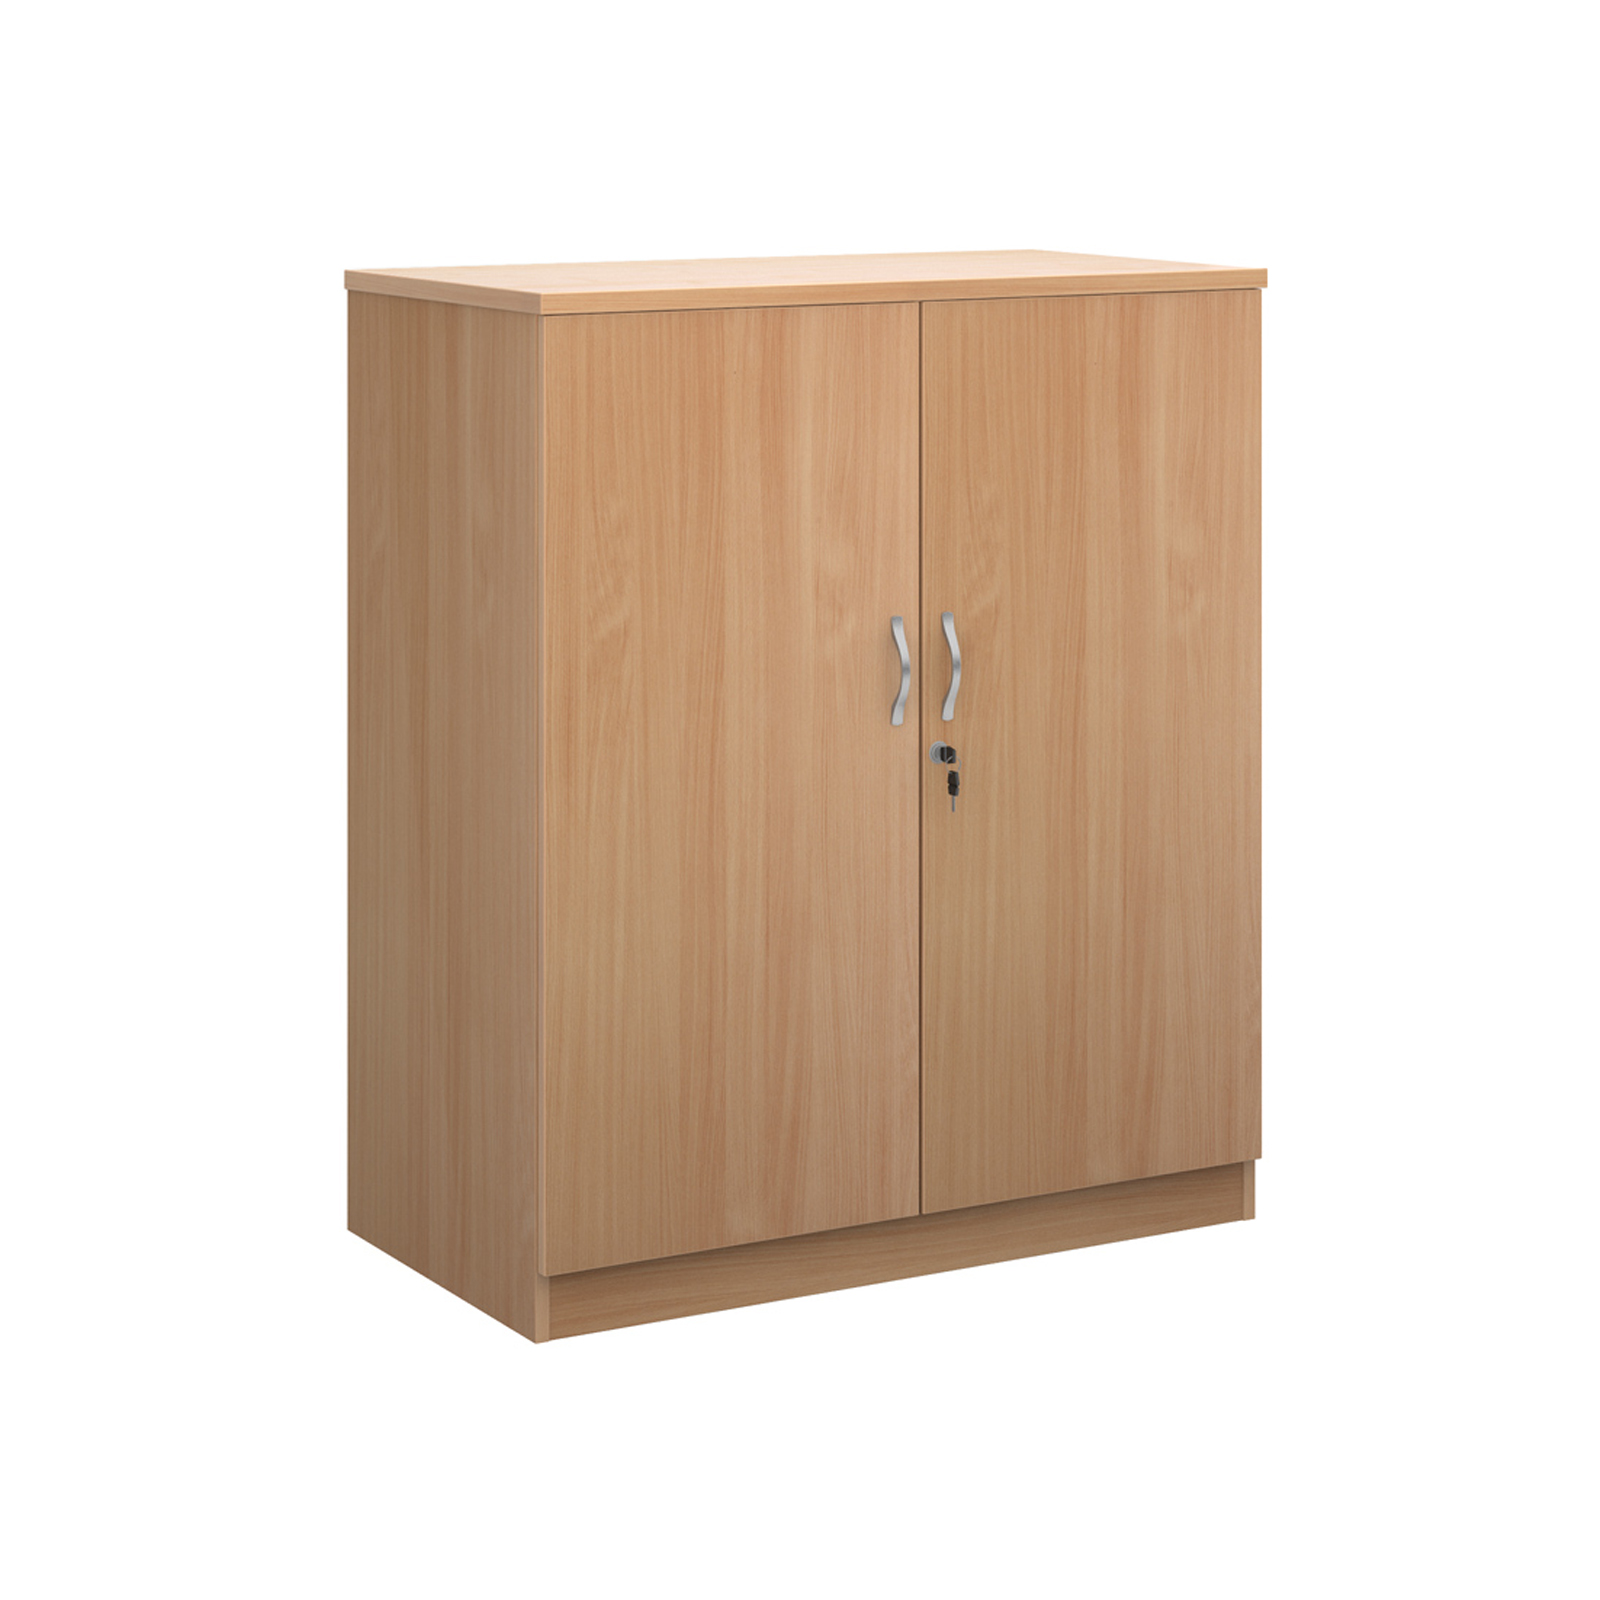 Deluxe double door cupboard